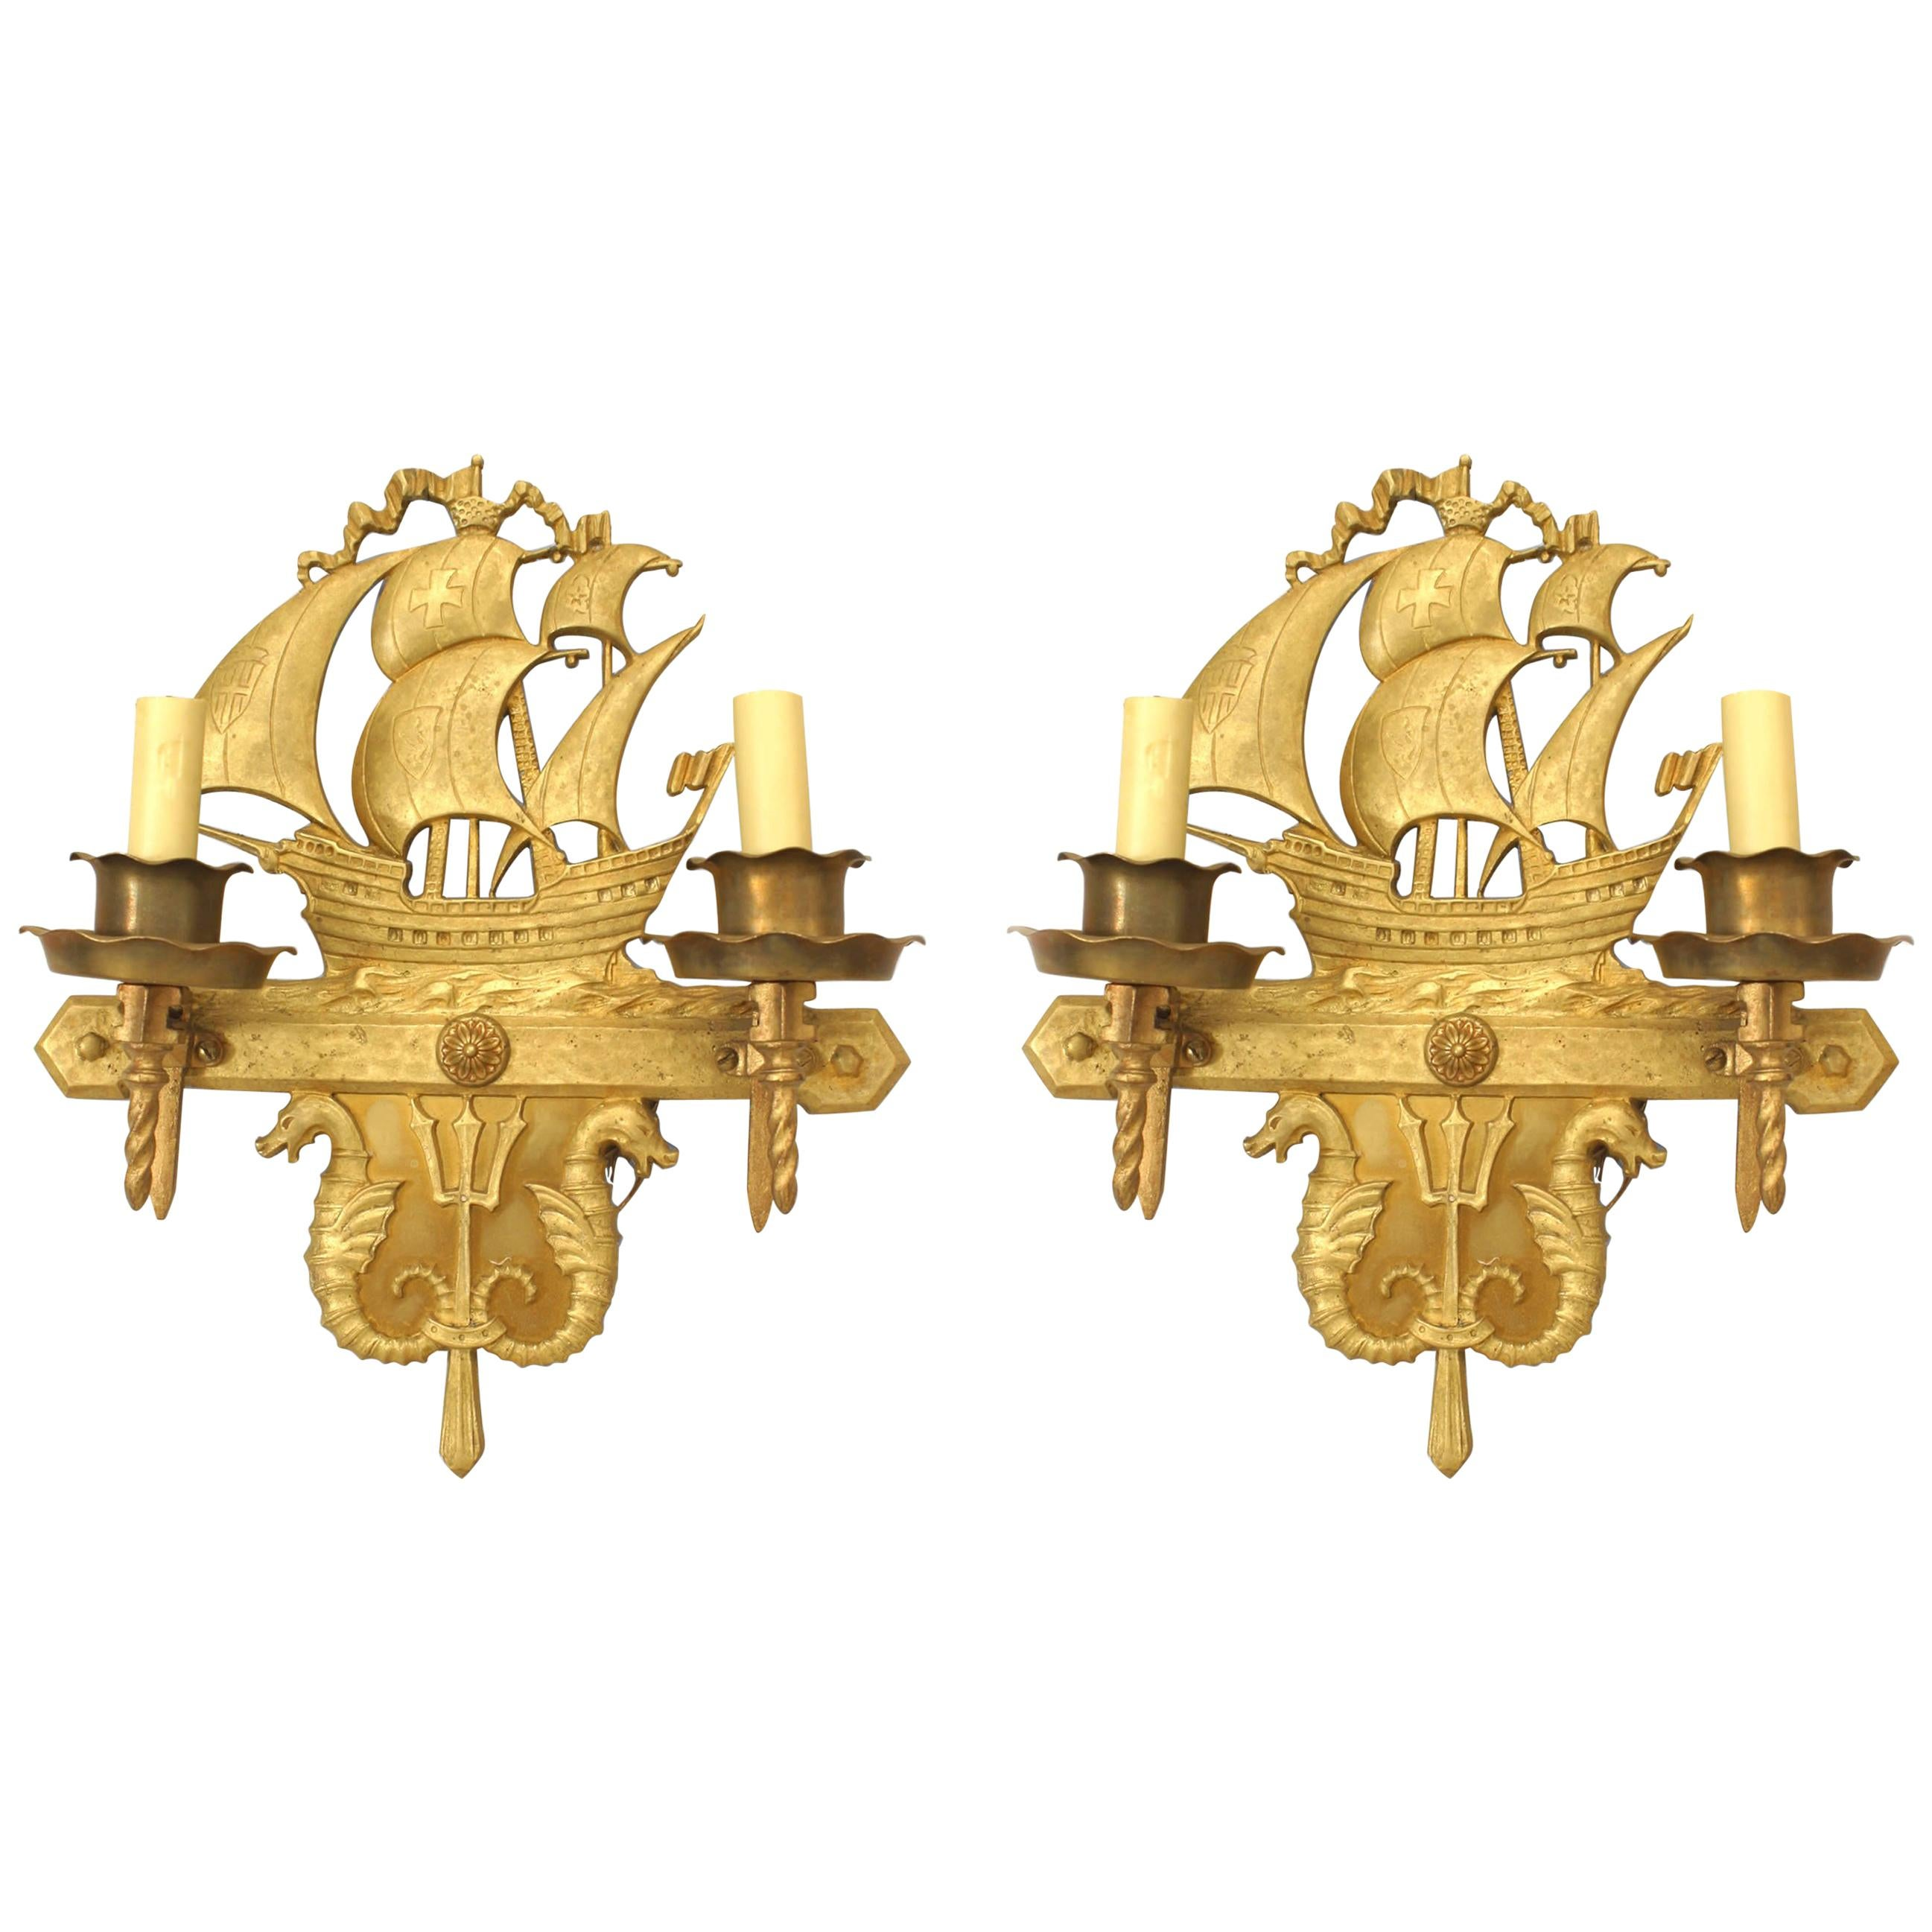 Pair of American Victorian Style Bronze Ship Wall Sconces